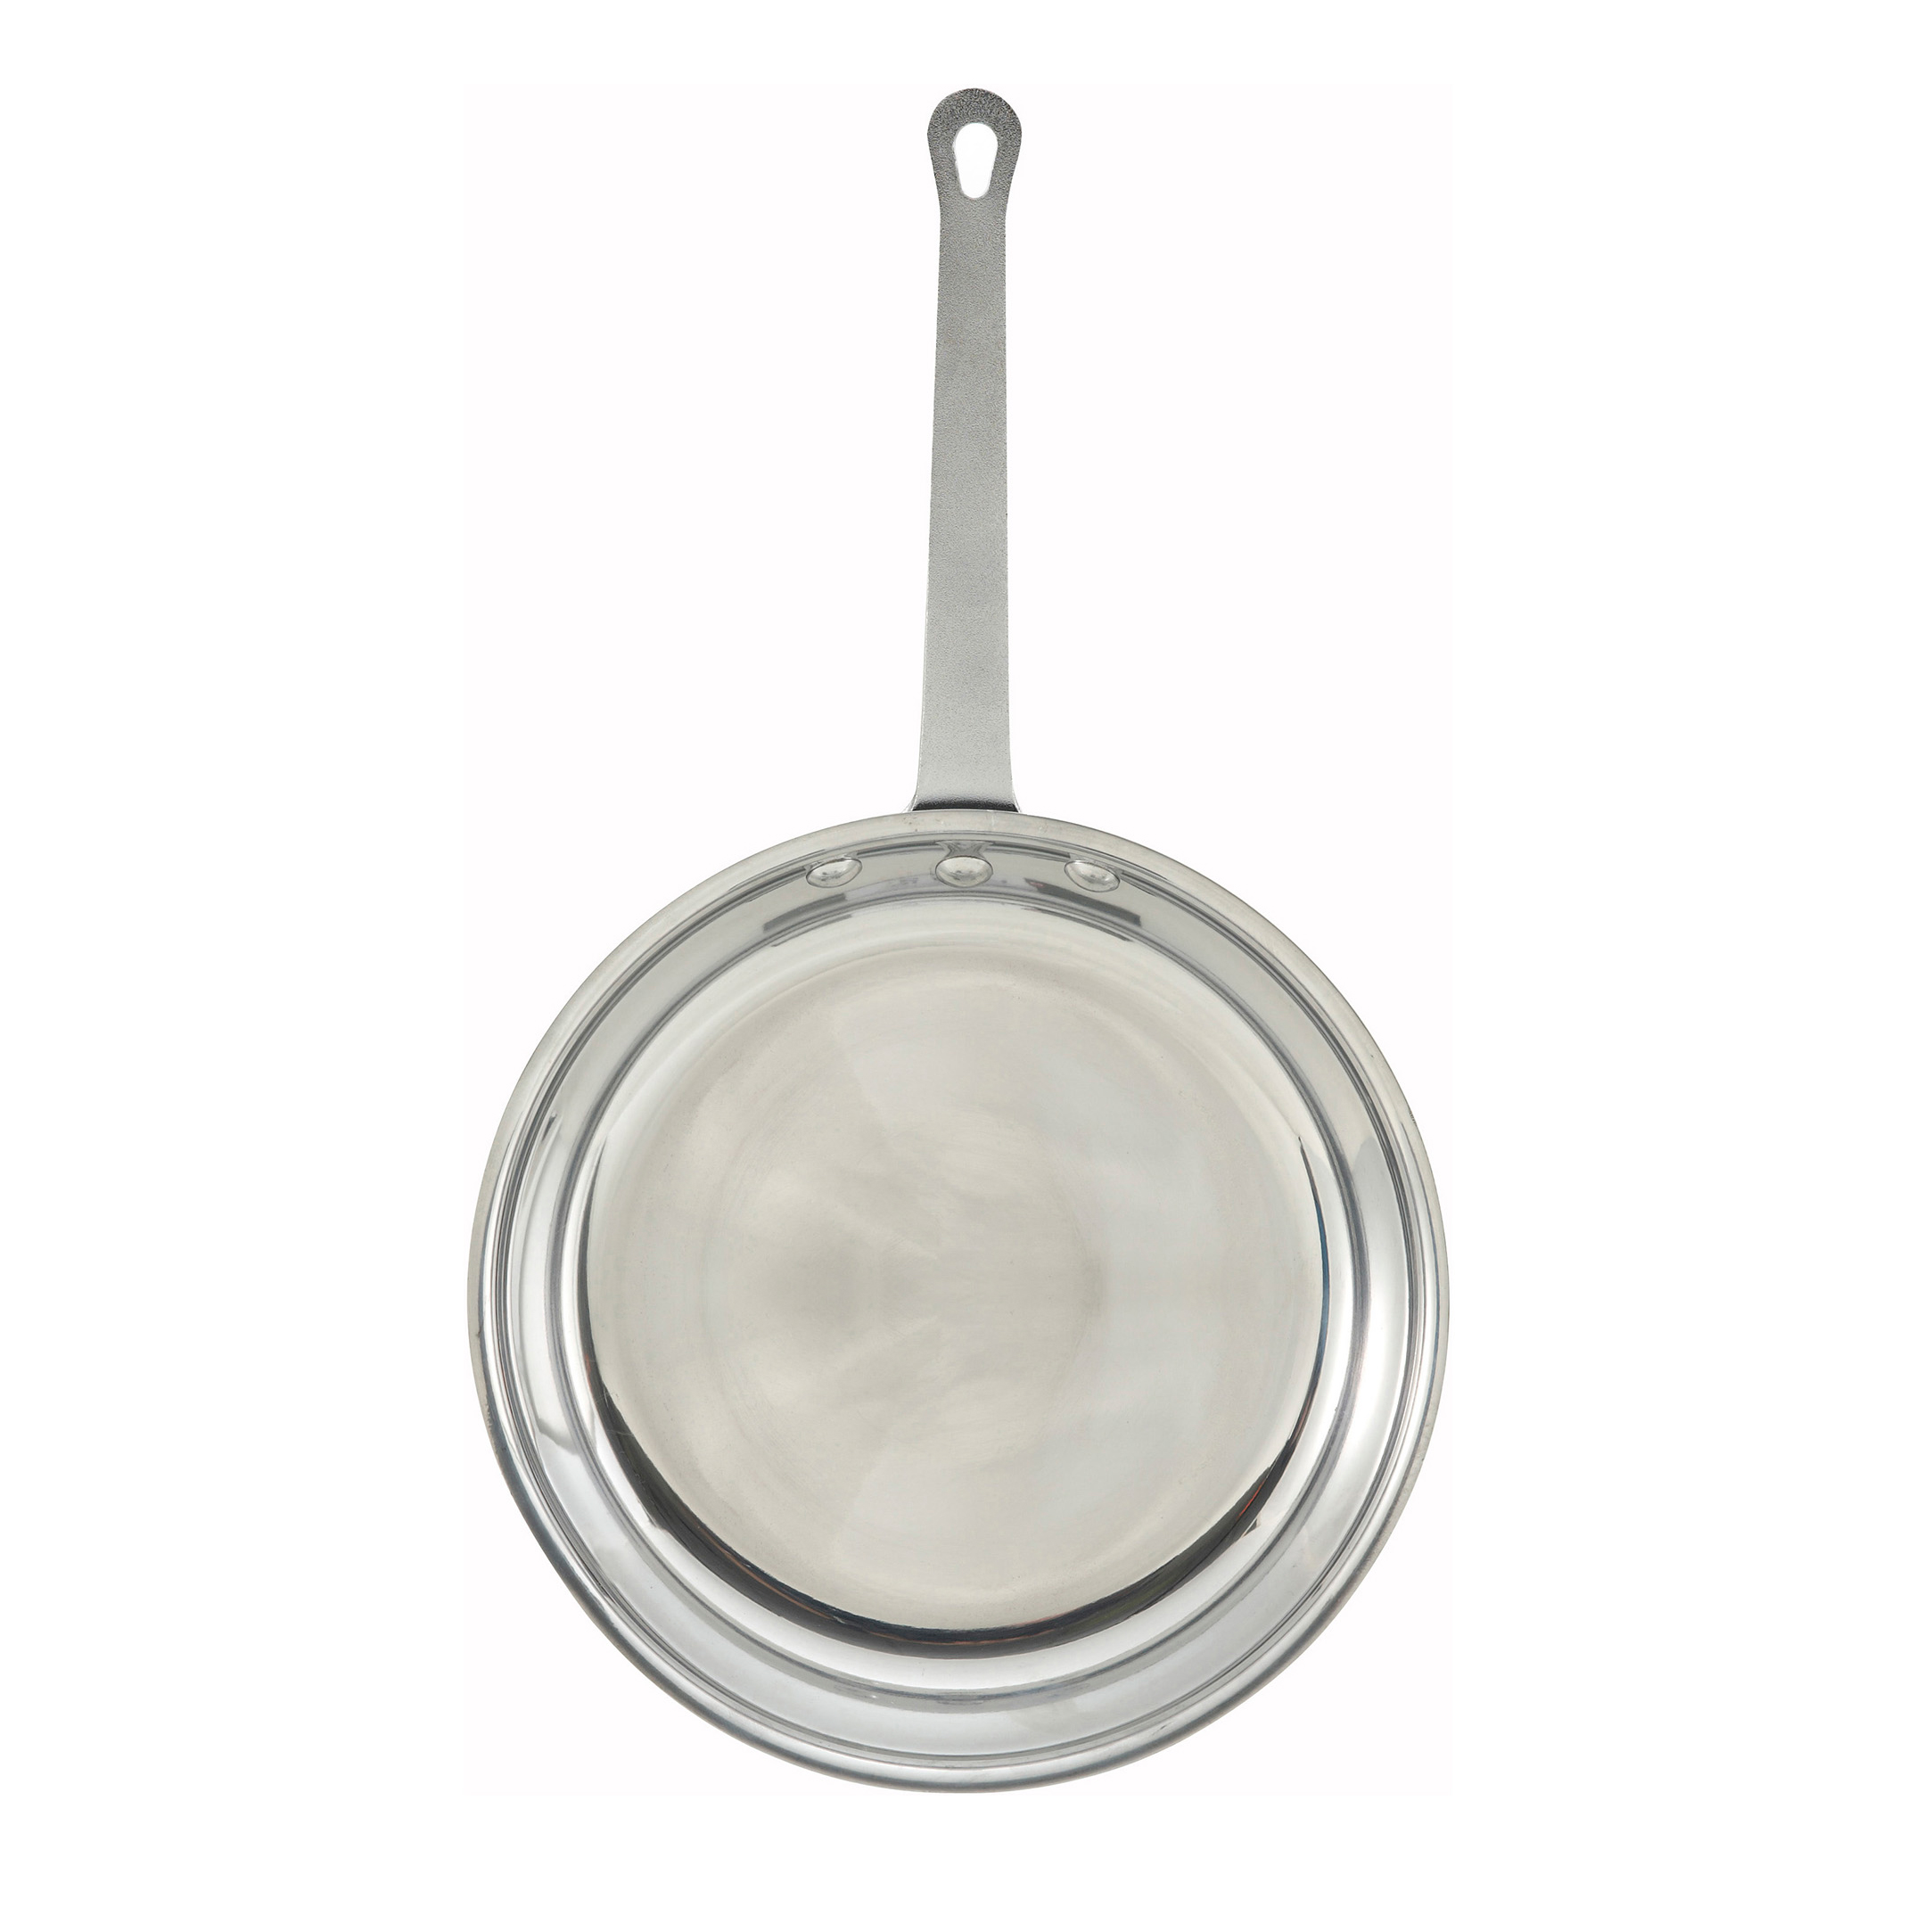 Winco AFP-10 fry pan